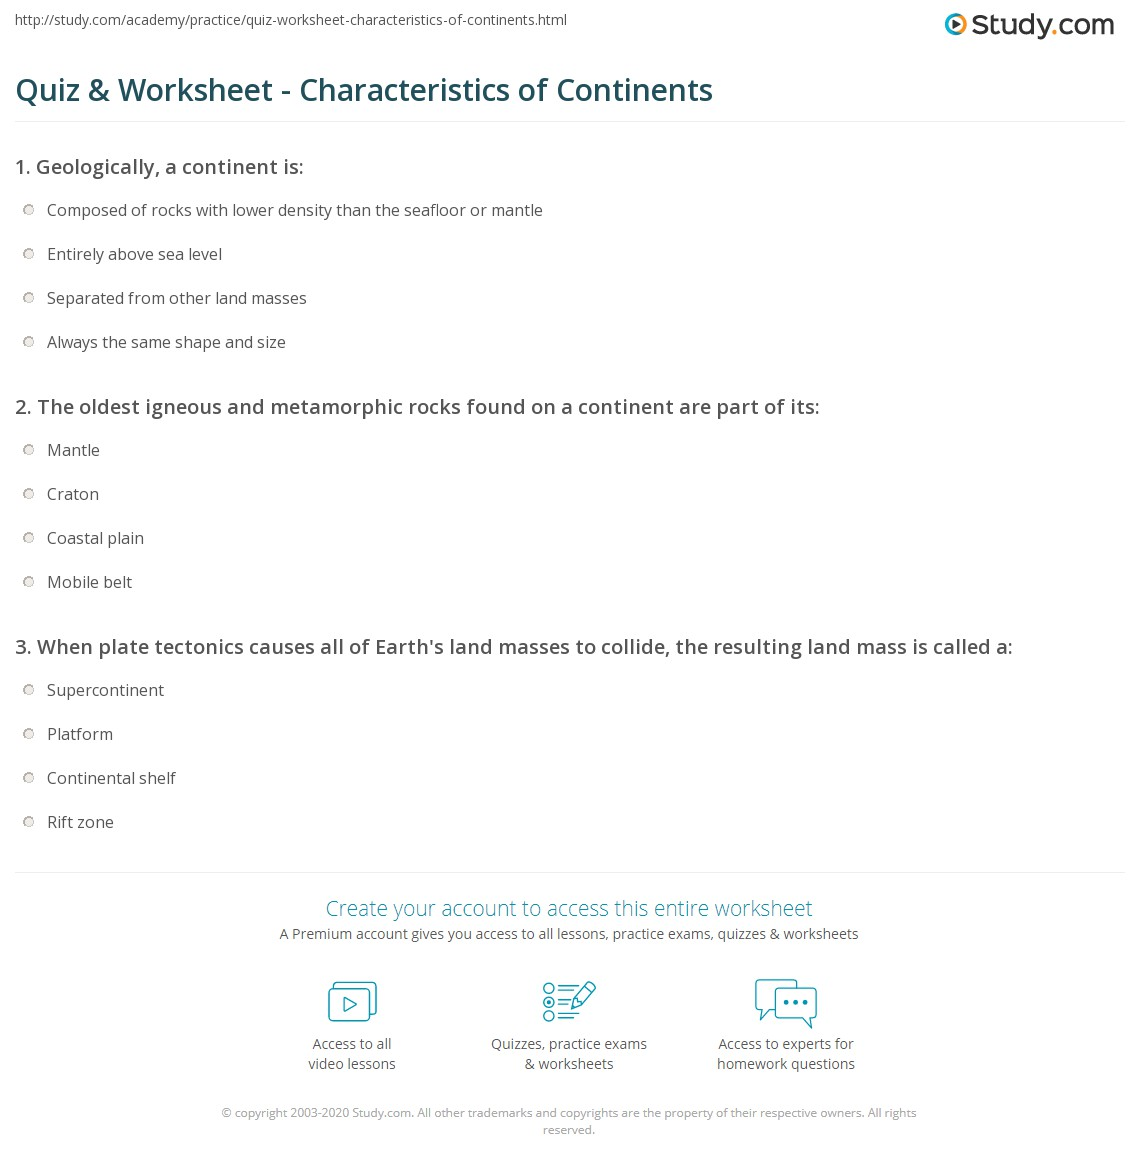 Worksheets Continents Worksheet quiz worksheet characteristics of continents study com print what is a continent definition explanation worksheet